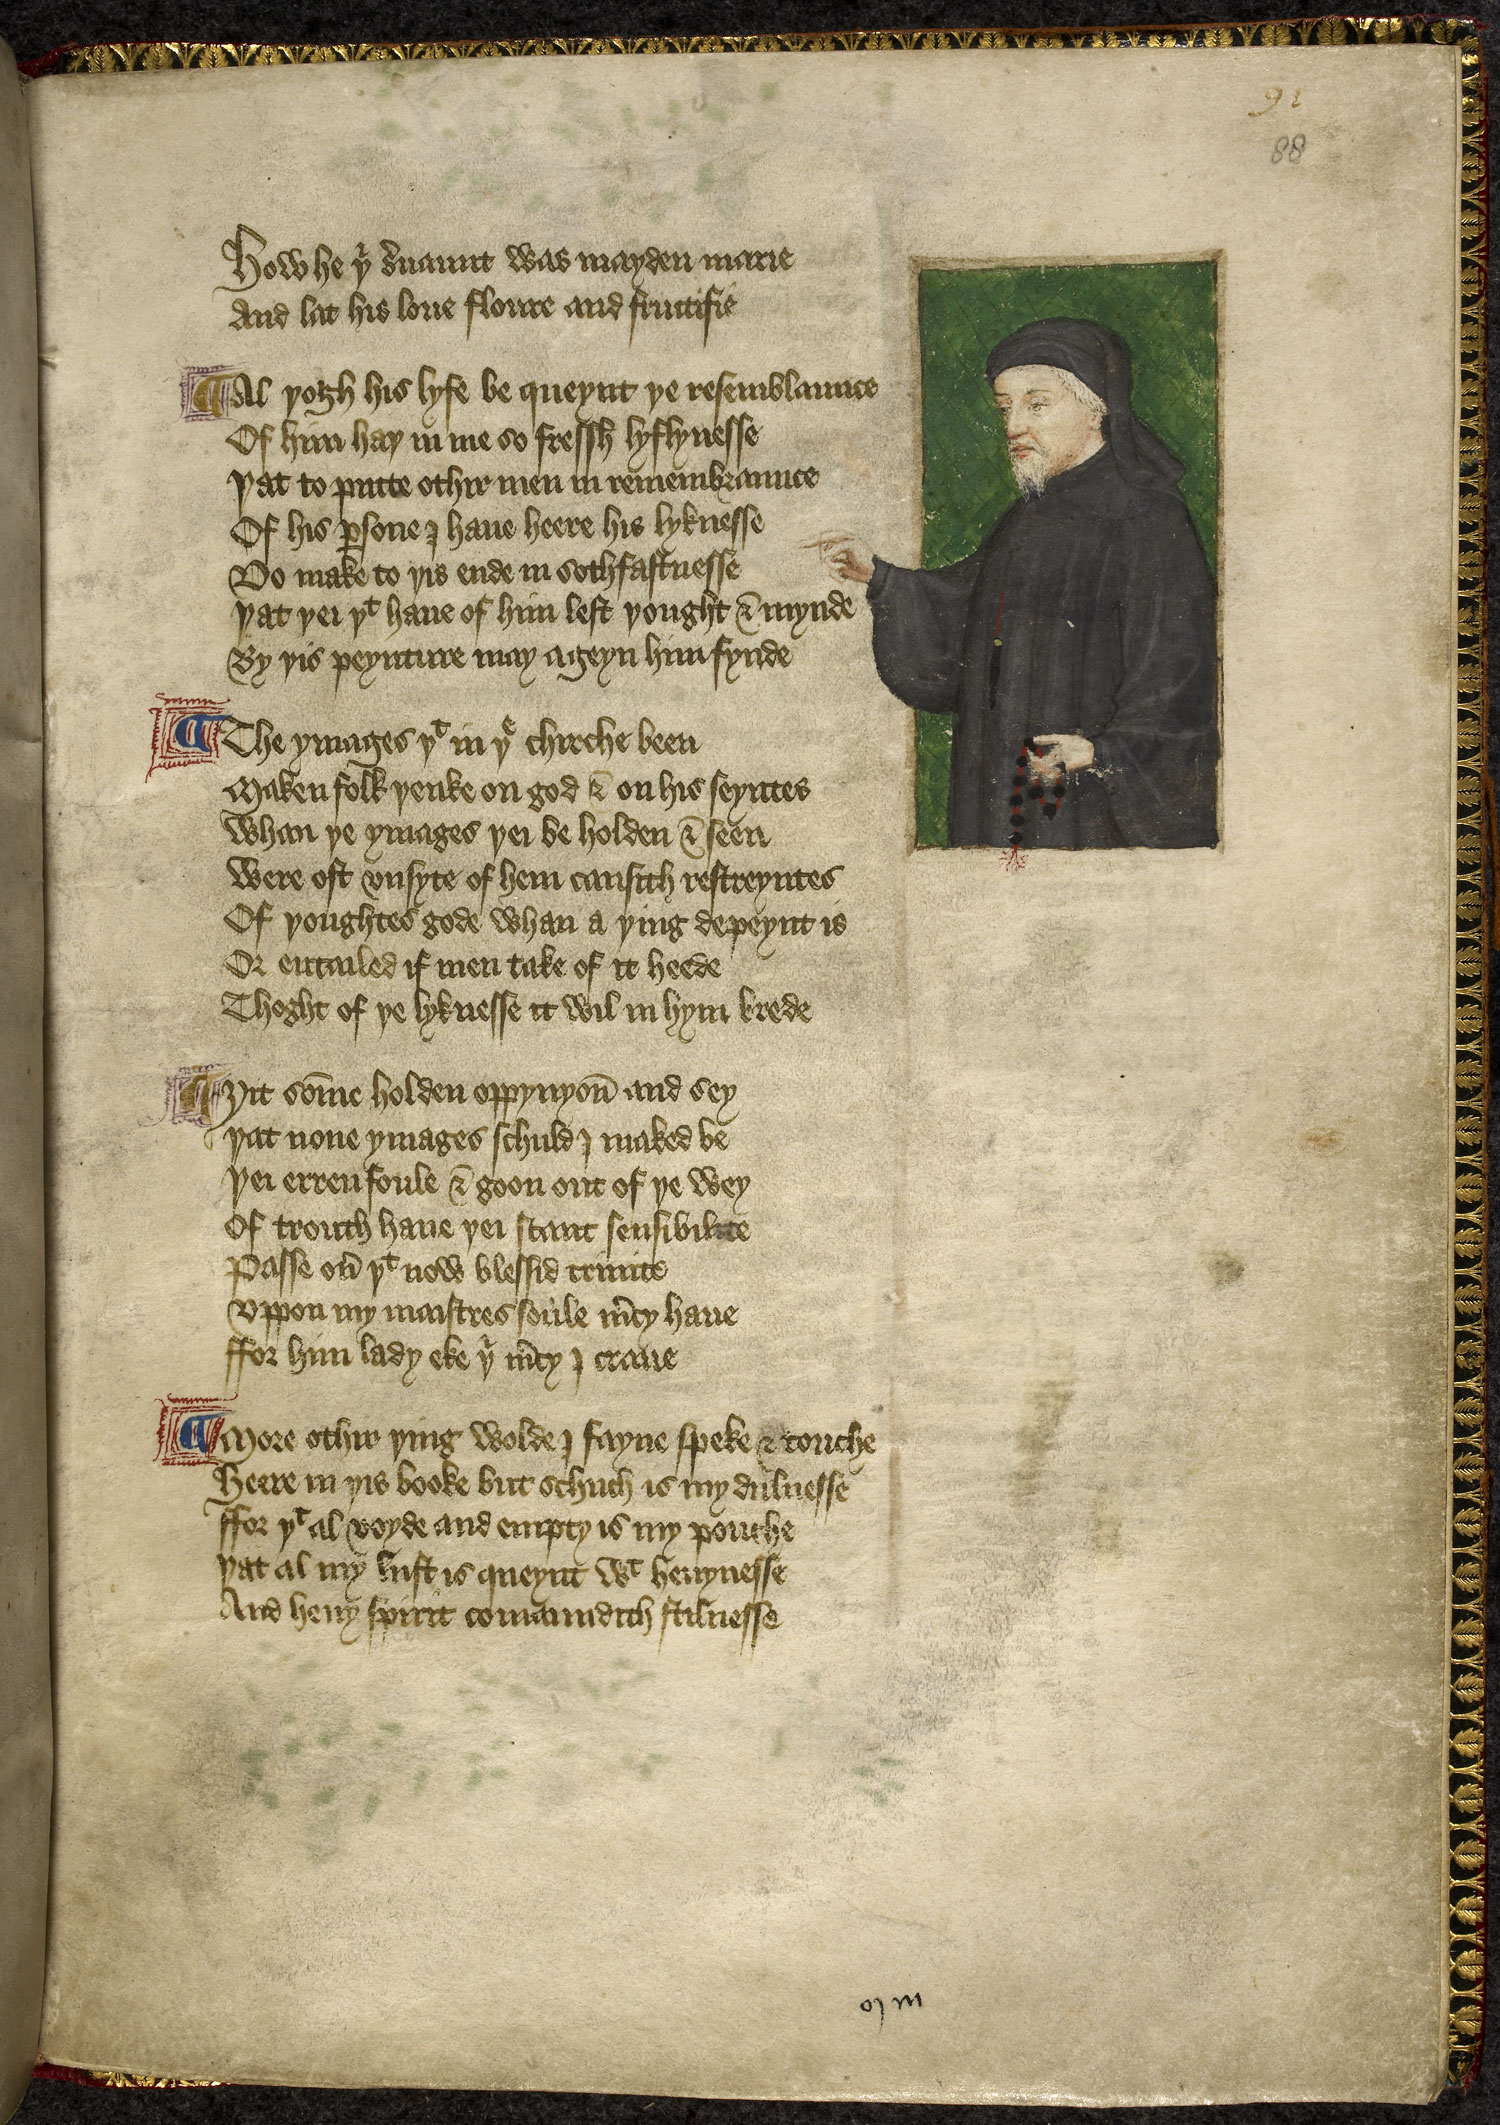 Chaucer's influence